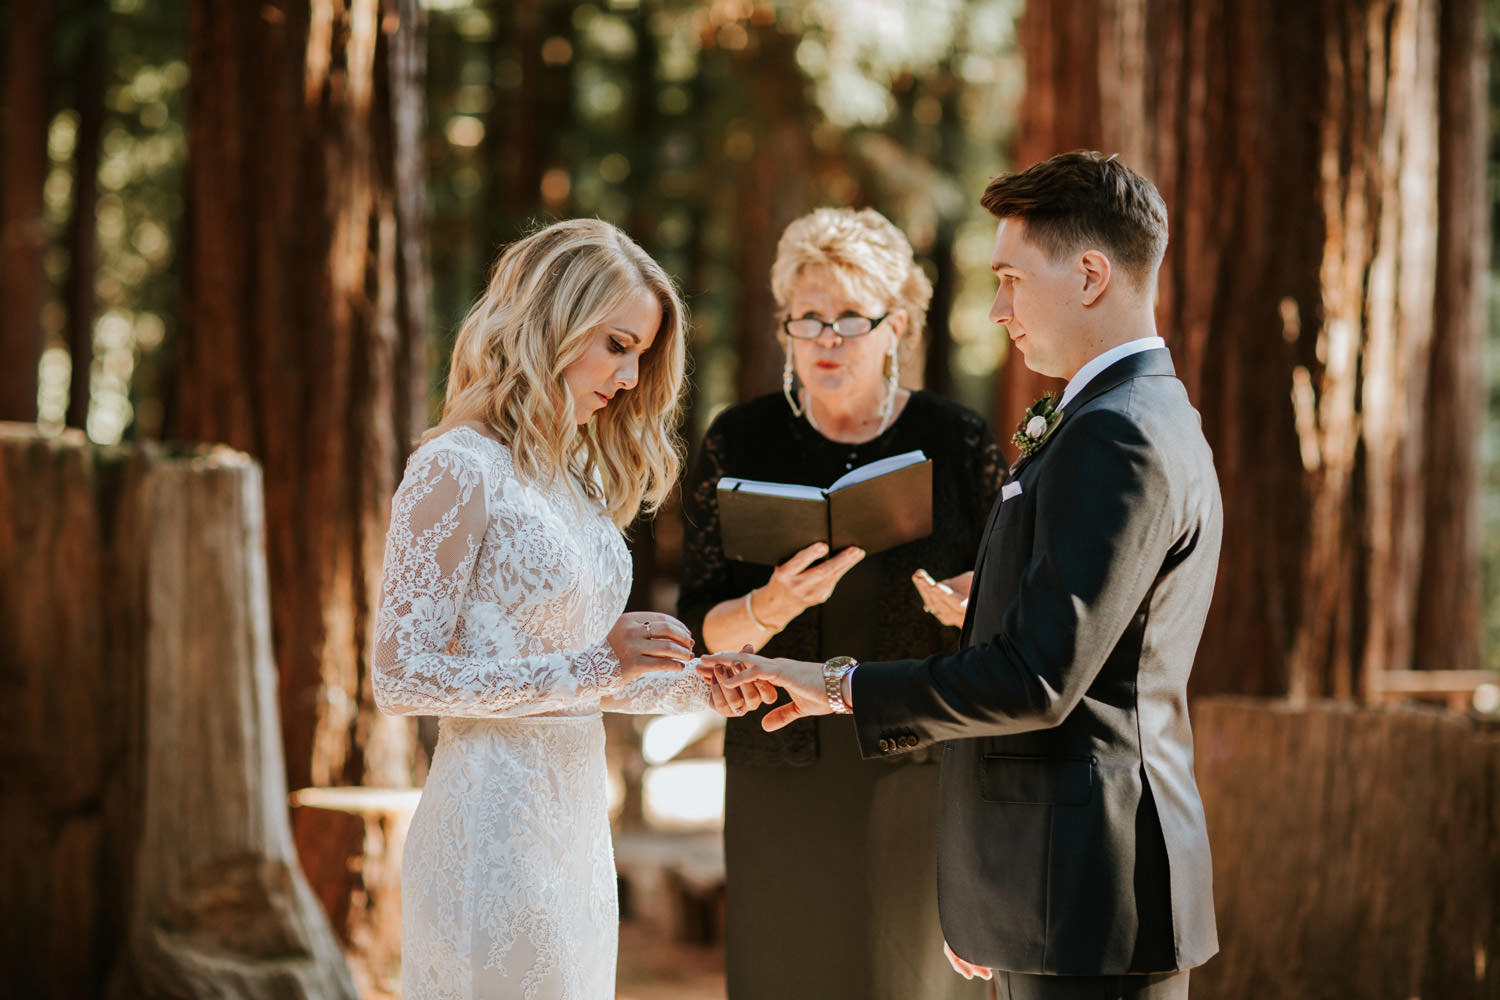 Close up picture of the bride and groom exchanging rings during the wedding ceremony at YMCA Camp Campbell